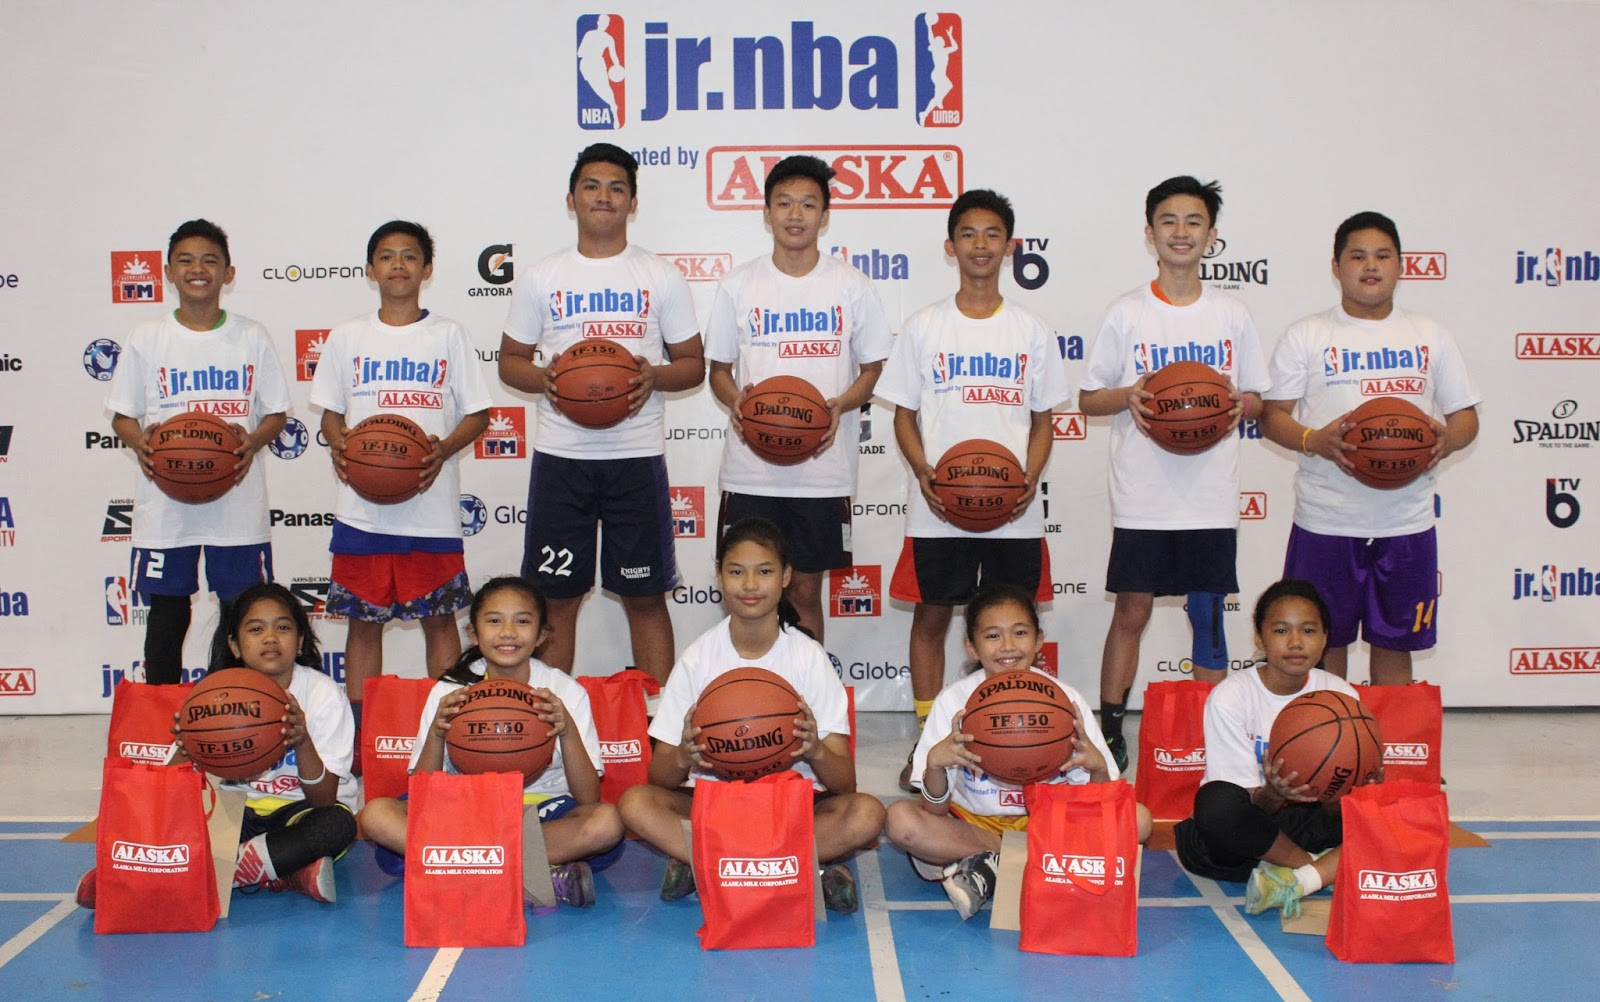 12 Young Athletes will represent Mindanao in the Jr. NBA Philippines 2017 National Training Camp